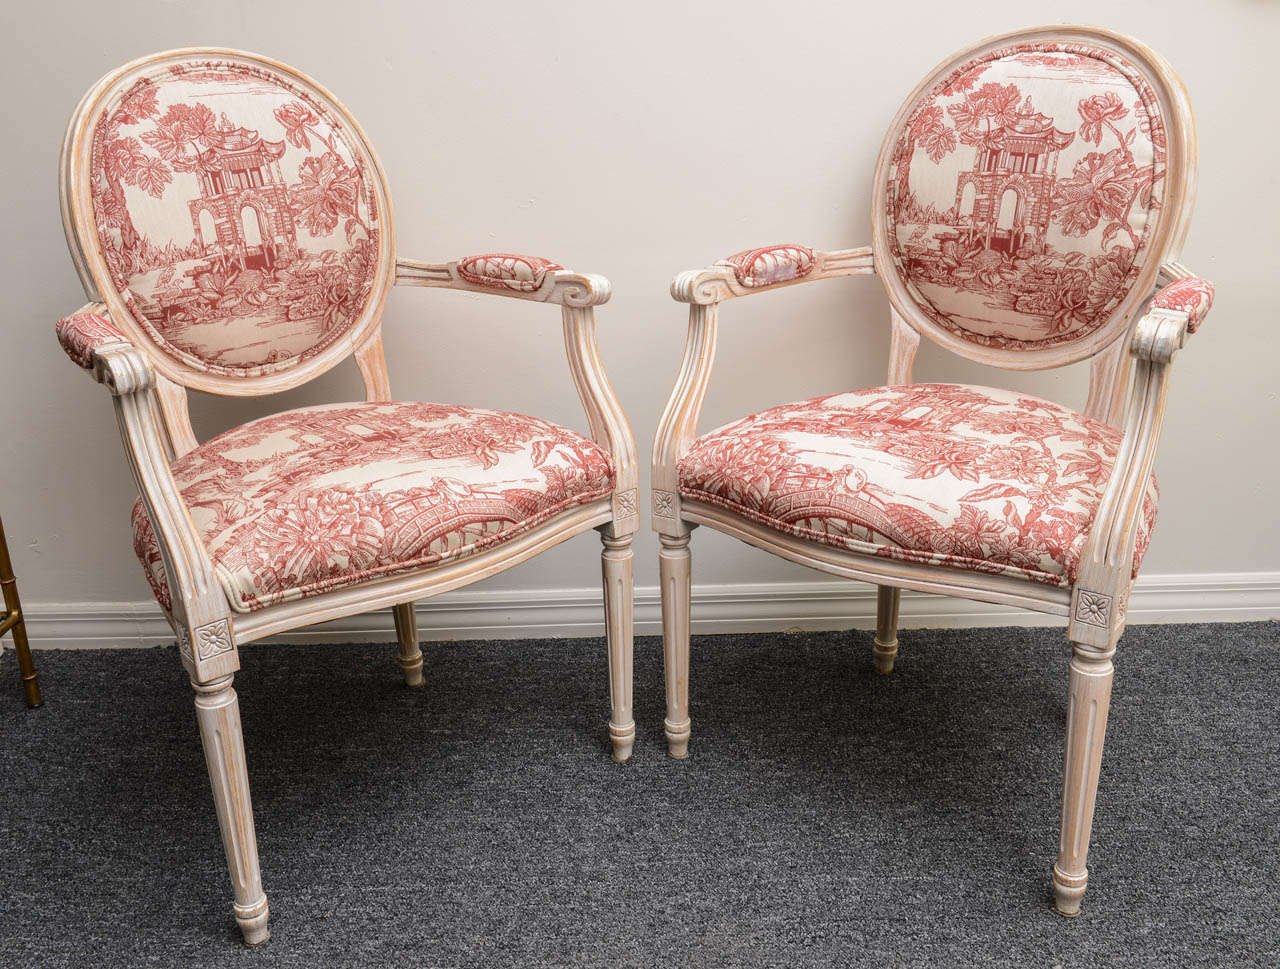 Pair French Louis XVI Style Armchairs Upholstered in a Red Chinoiserie Fabric 4